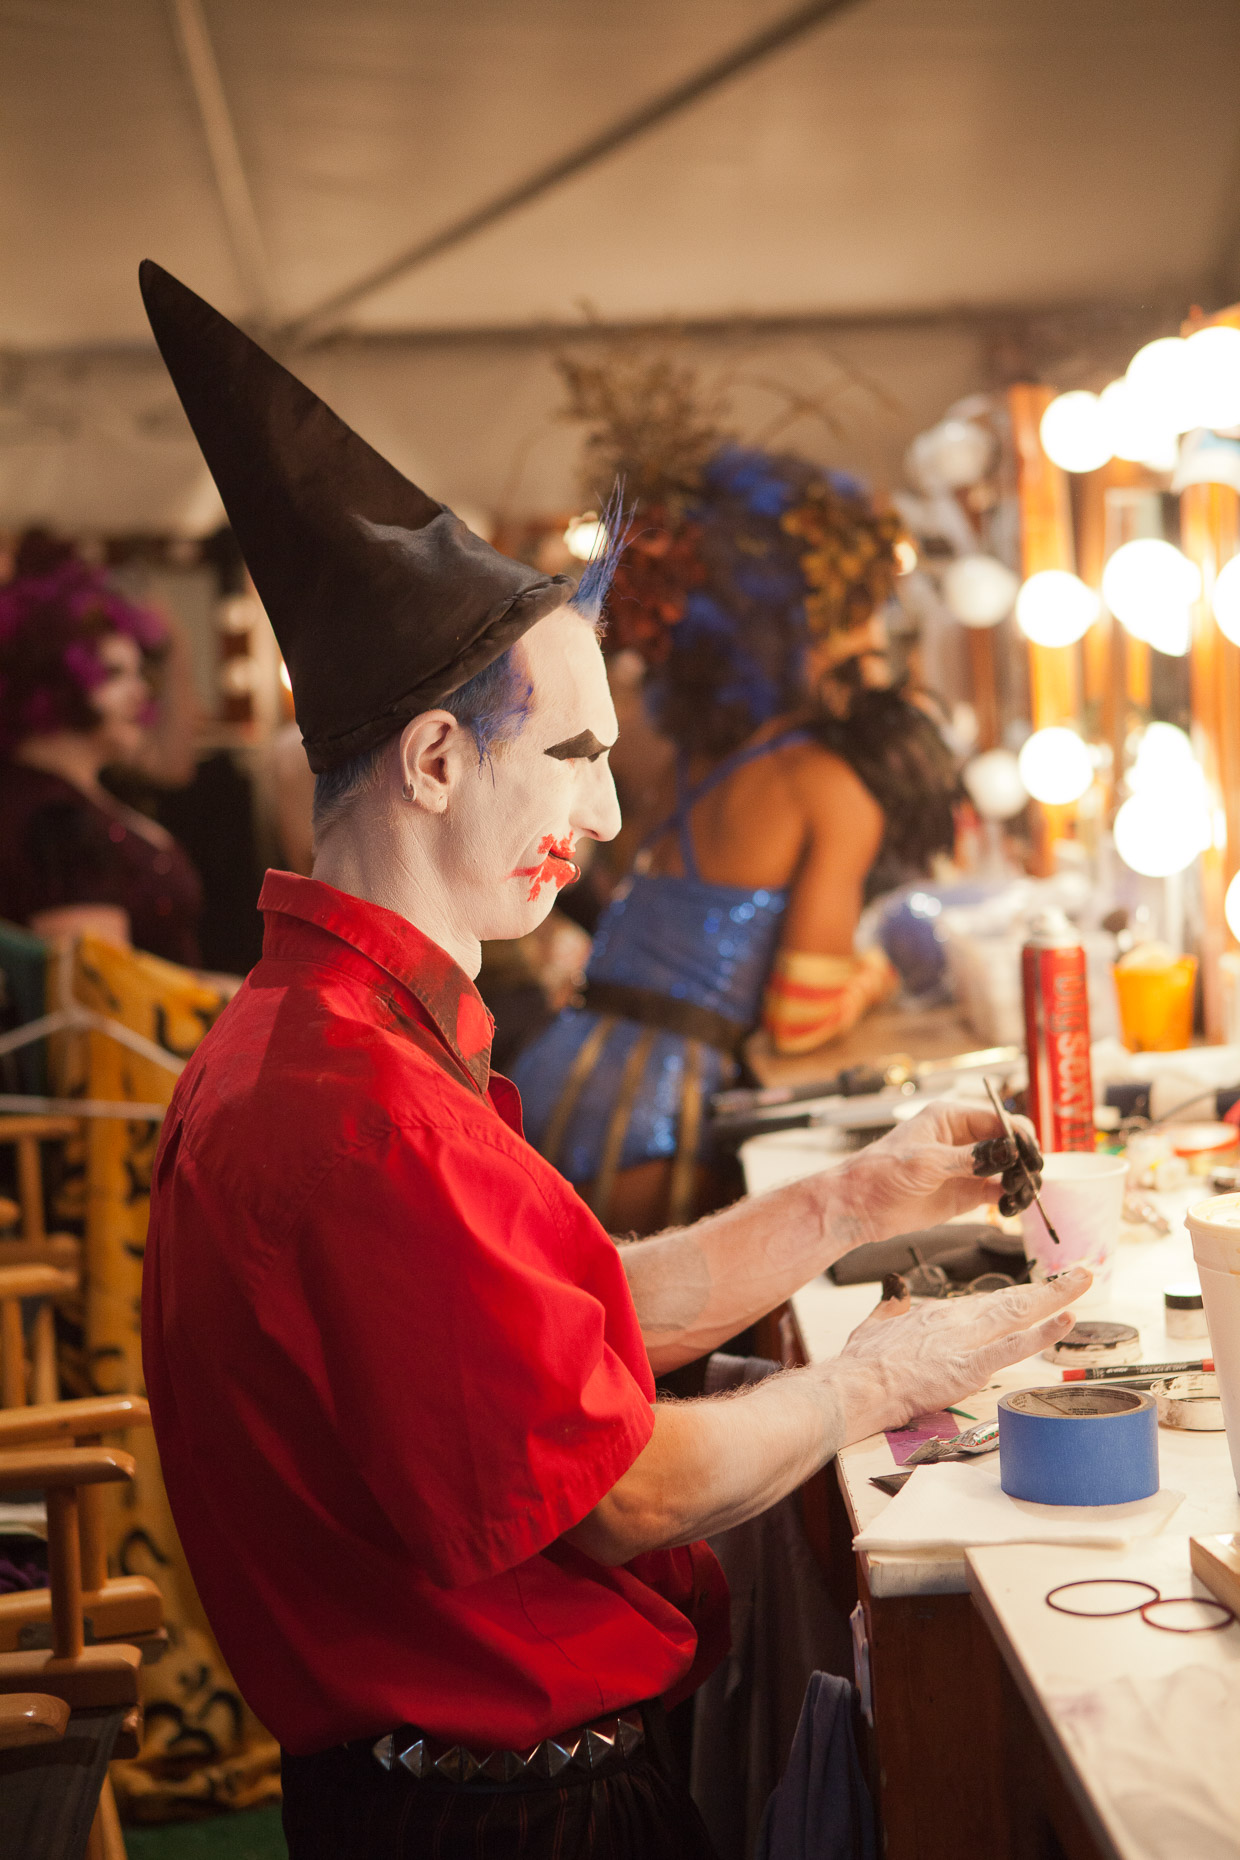 Performer applying makeup backstage at Cirque Berzerk circus performers, by David Zaitz